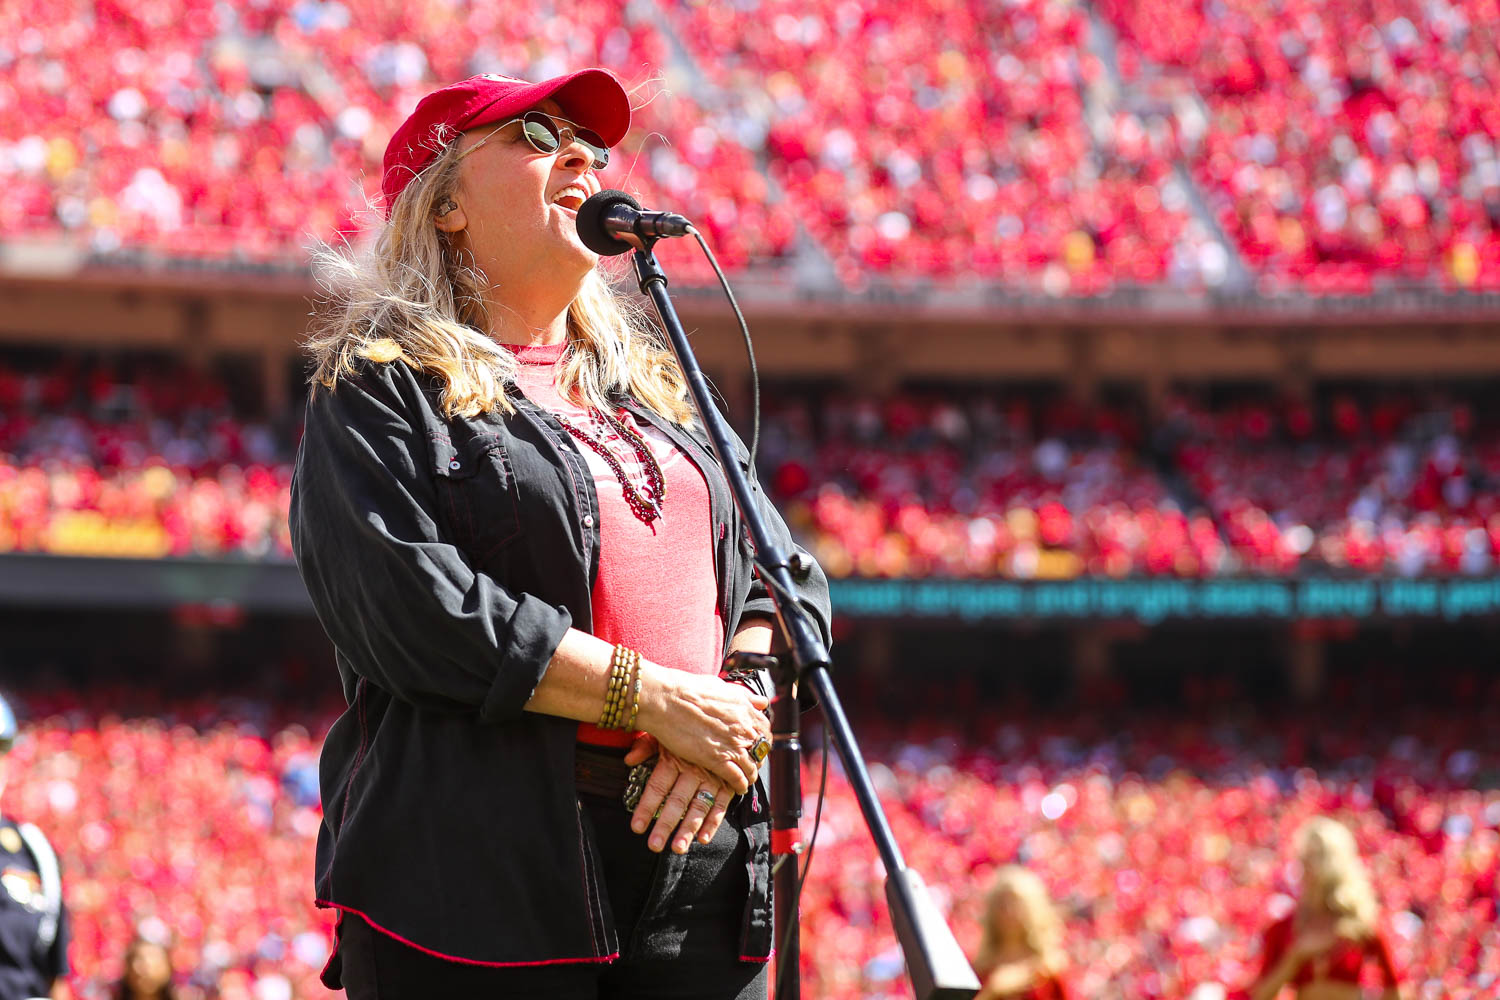 Melissa Etheridge singing the National Anthem prior to an NFL football game against the Los Angeles Chargers, Sunday, September 26, 2021 in Kansas City.